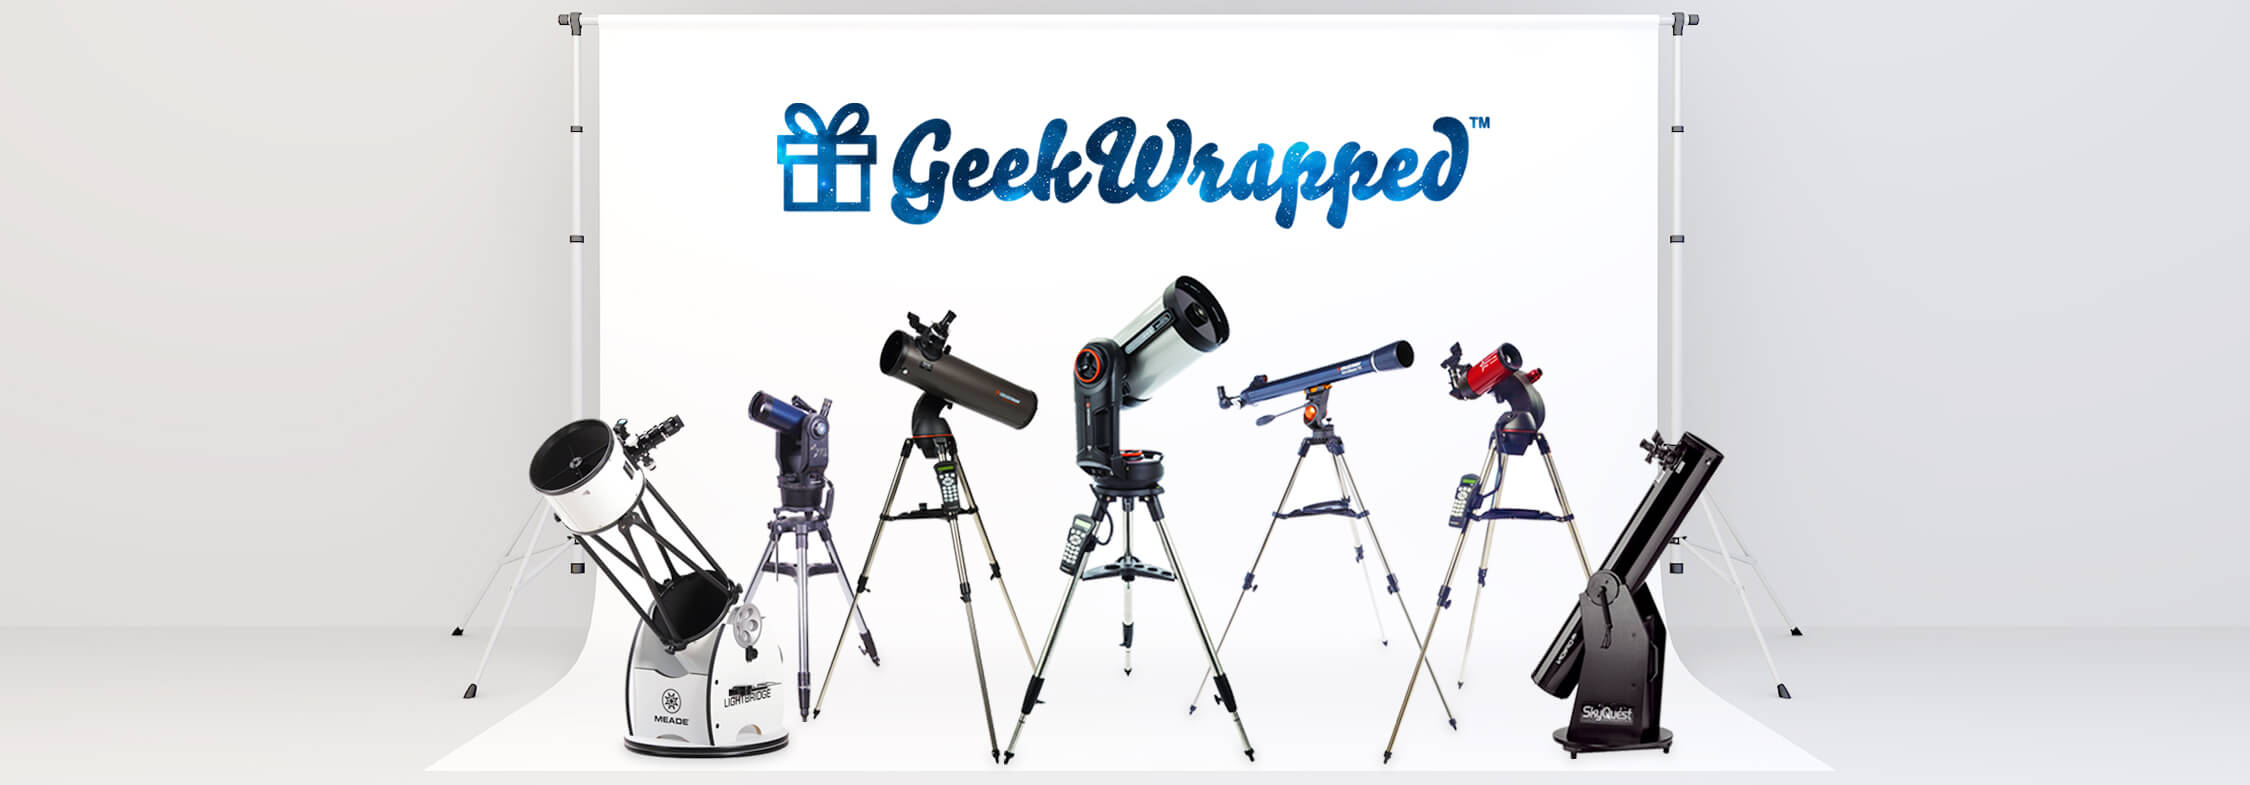 Telescope Buying Guide and Cheap Beginner Telescope Reviews